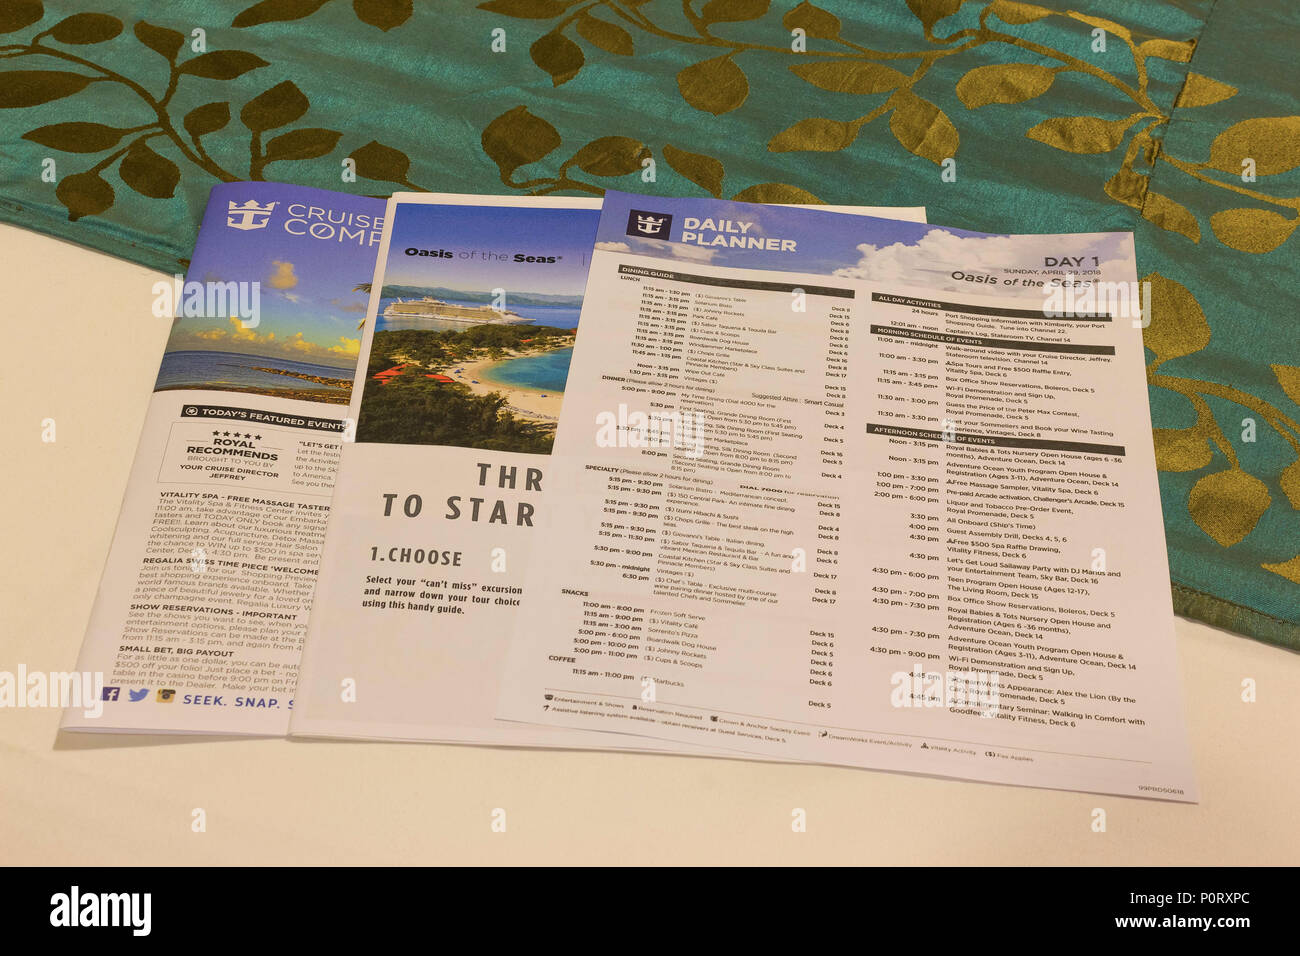 Cape Canaveral, USA - APRIL 29, 2018: The Daily Planner and Cruise Compass newspapers at cruise ship Oasis of the Seas - Stock Image